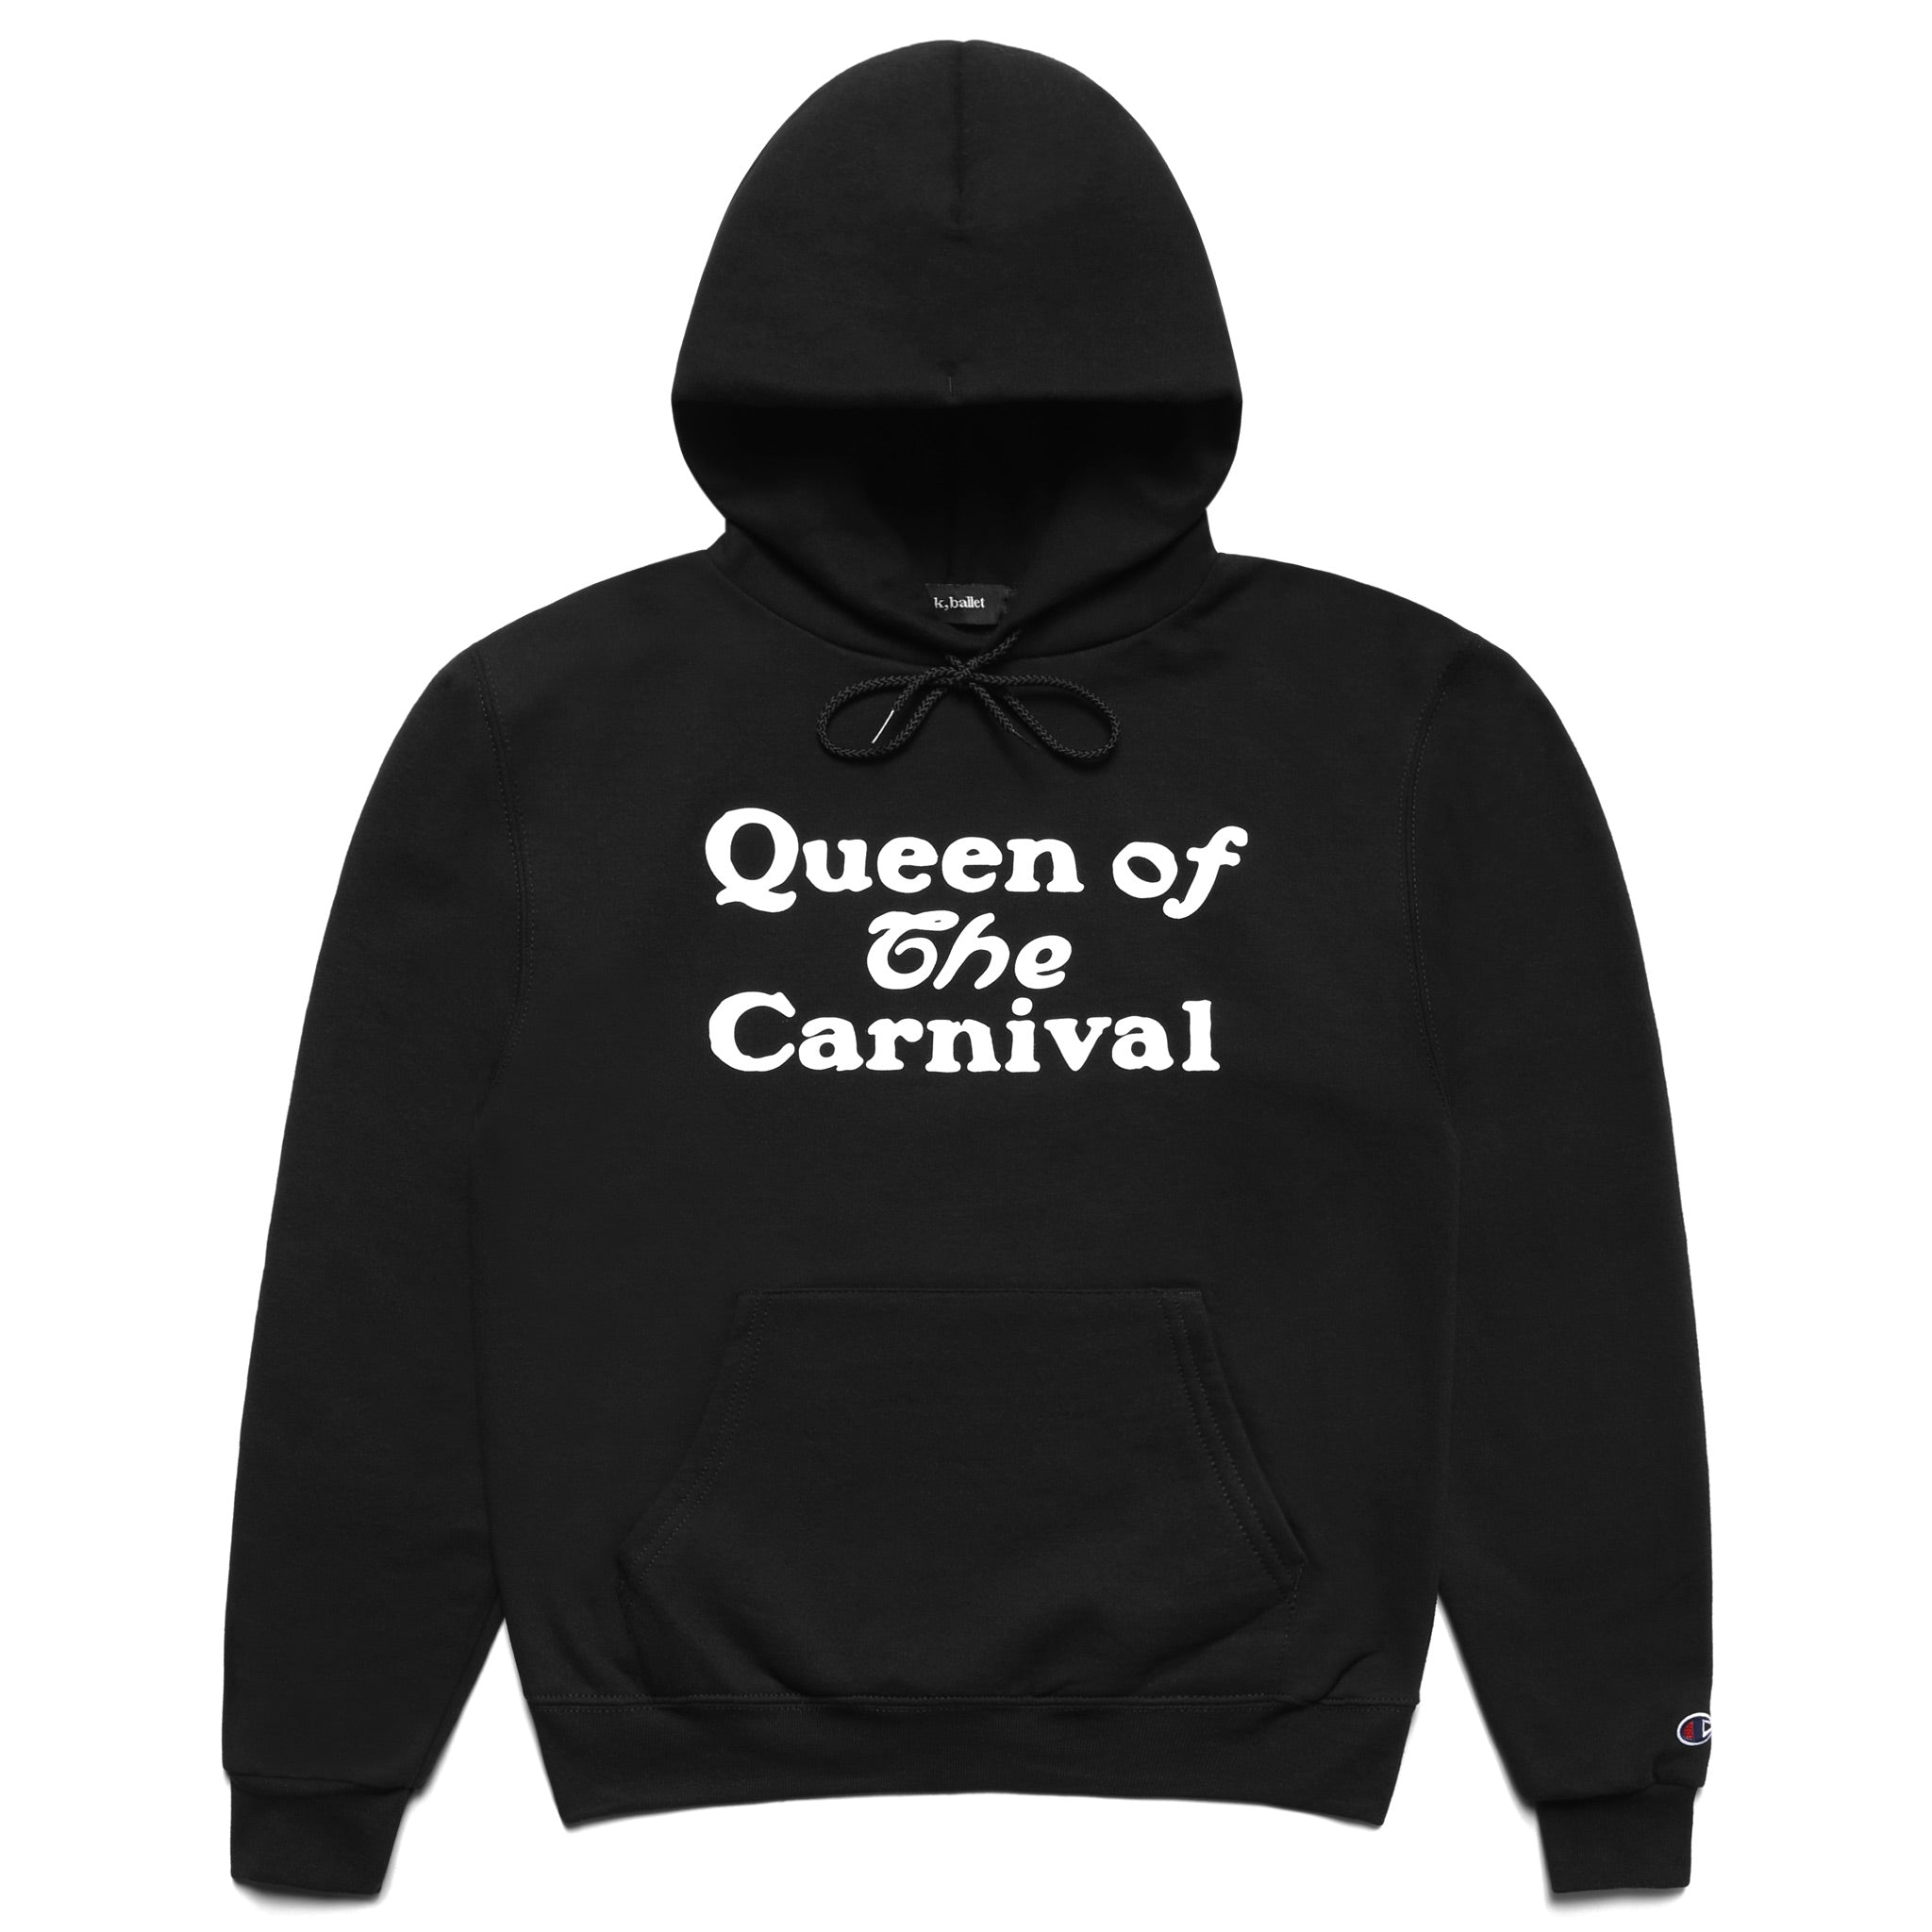 Queen of the Carnival Hooded Sweatshirt